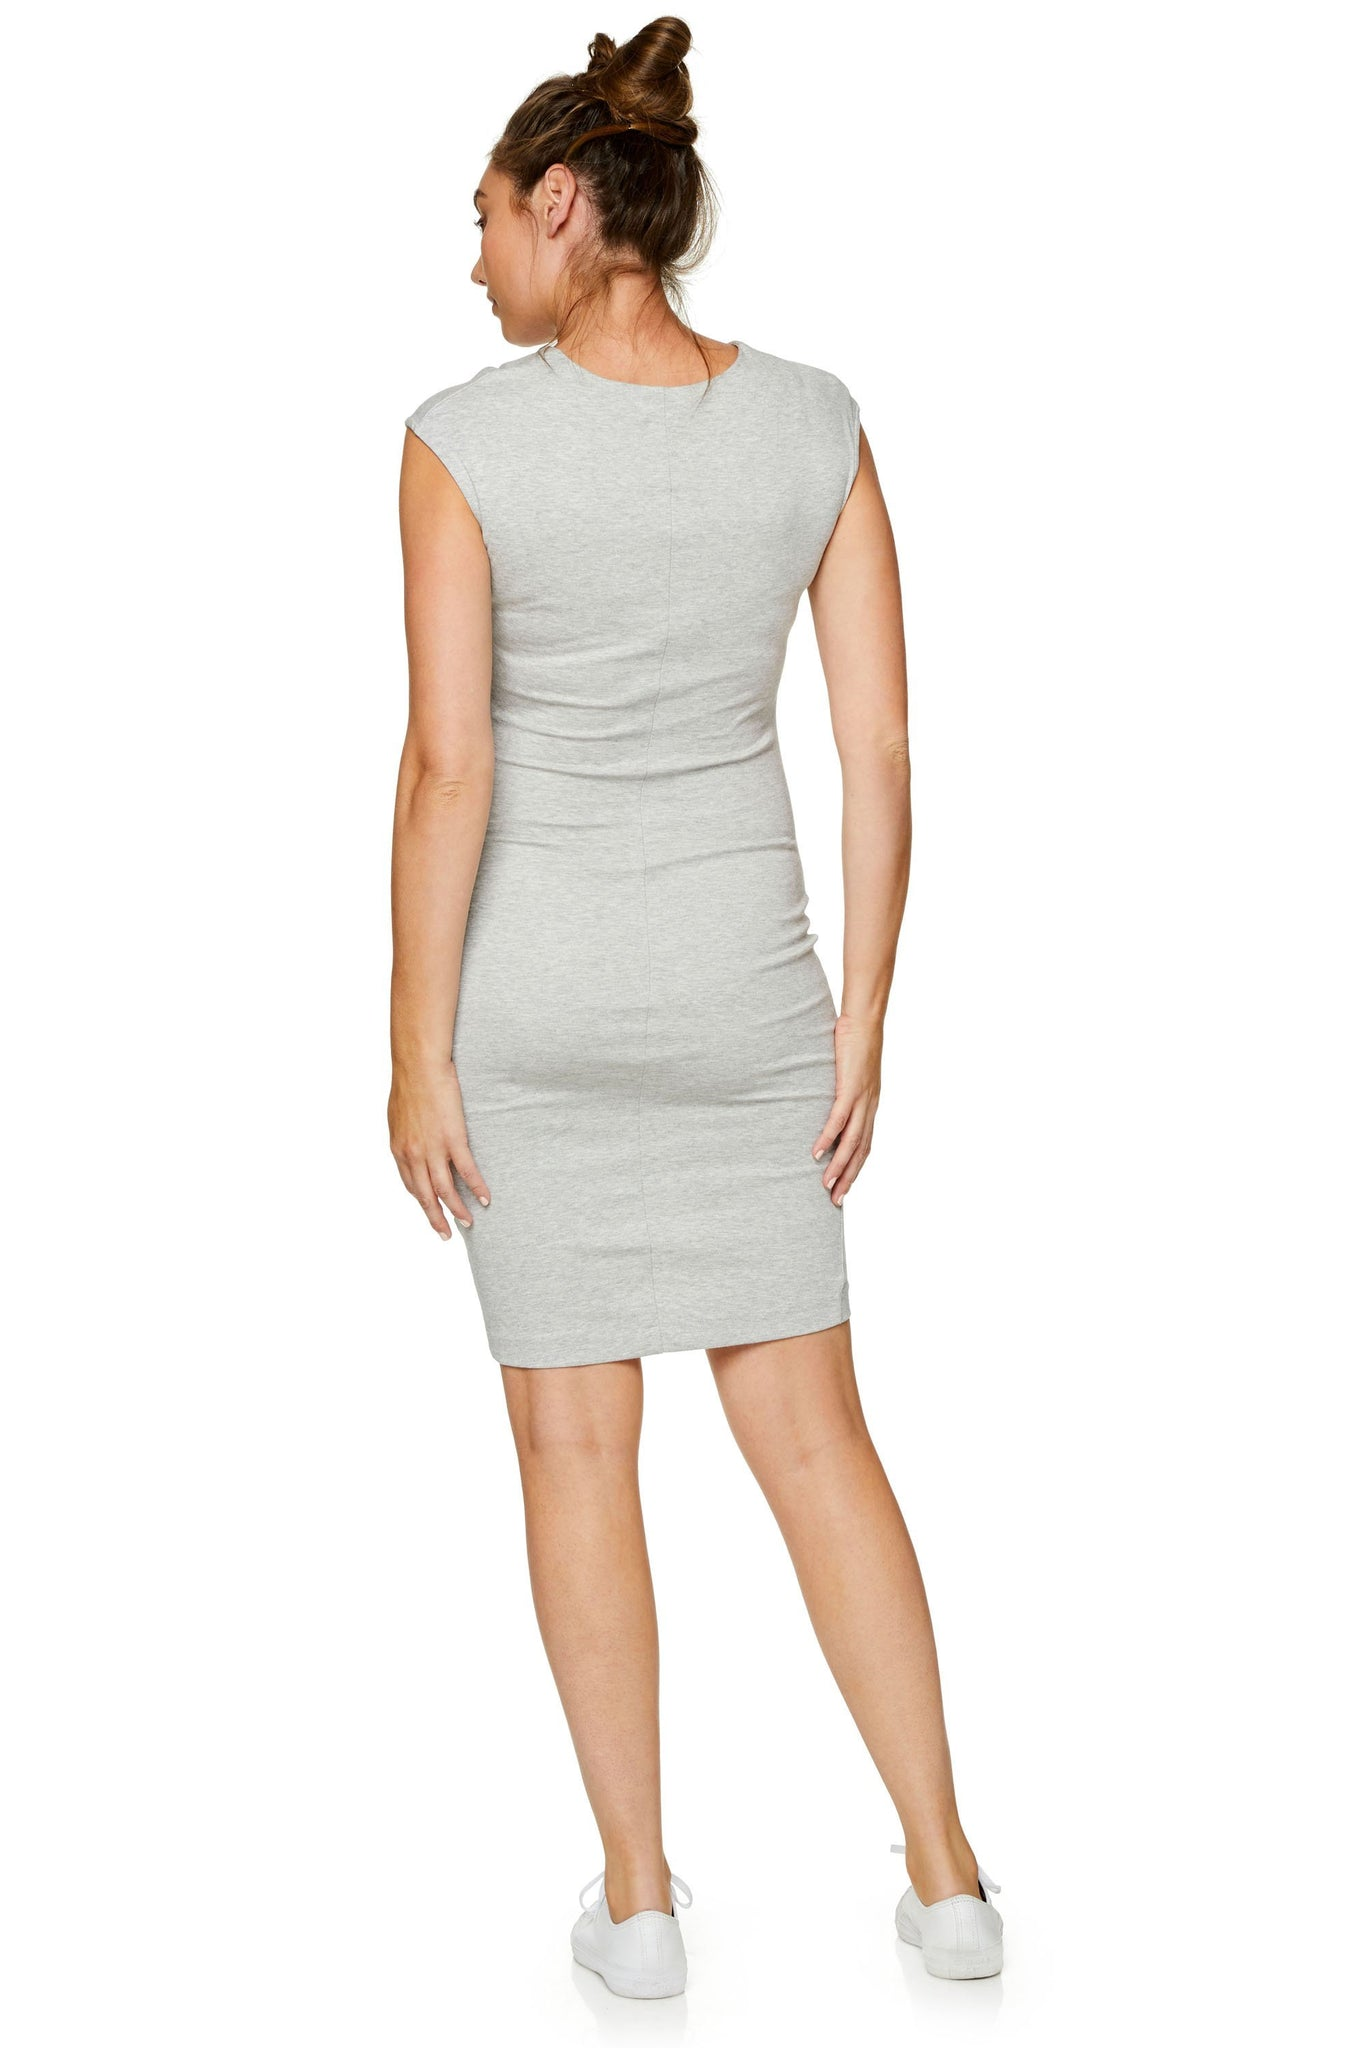 Bodycon Maternity Dress - Grey 8